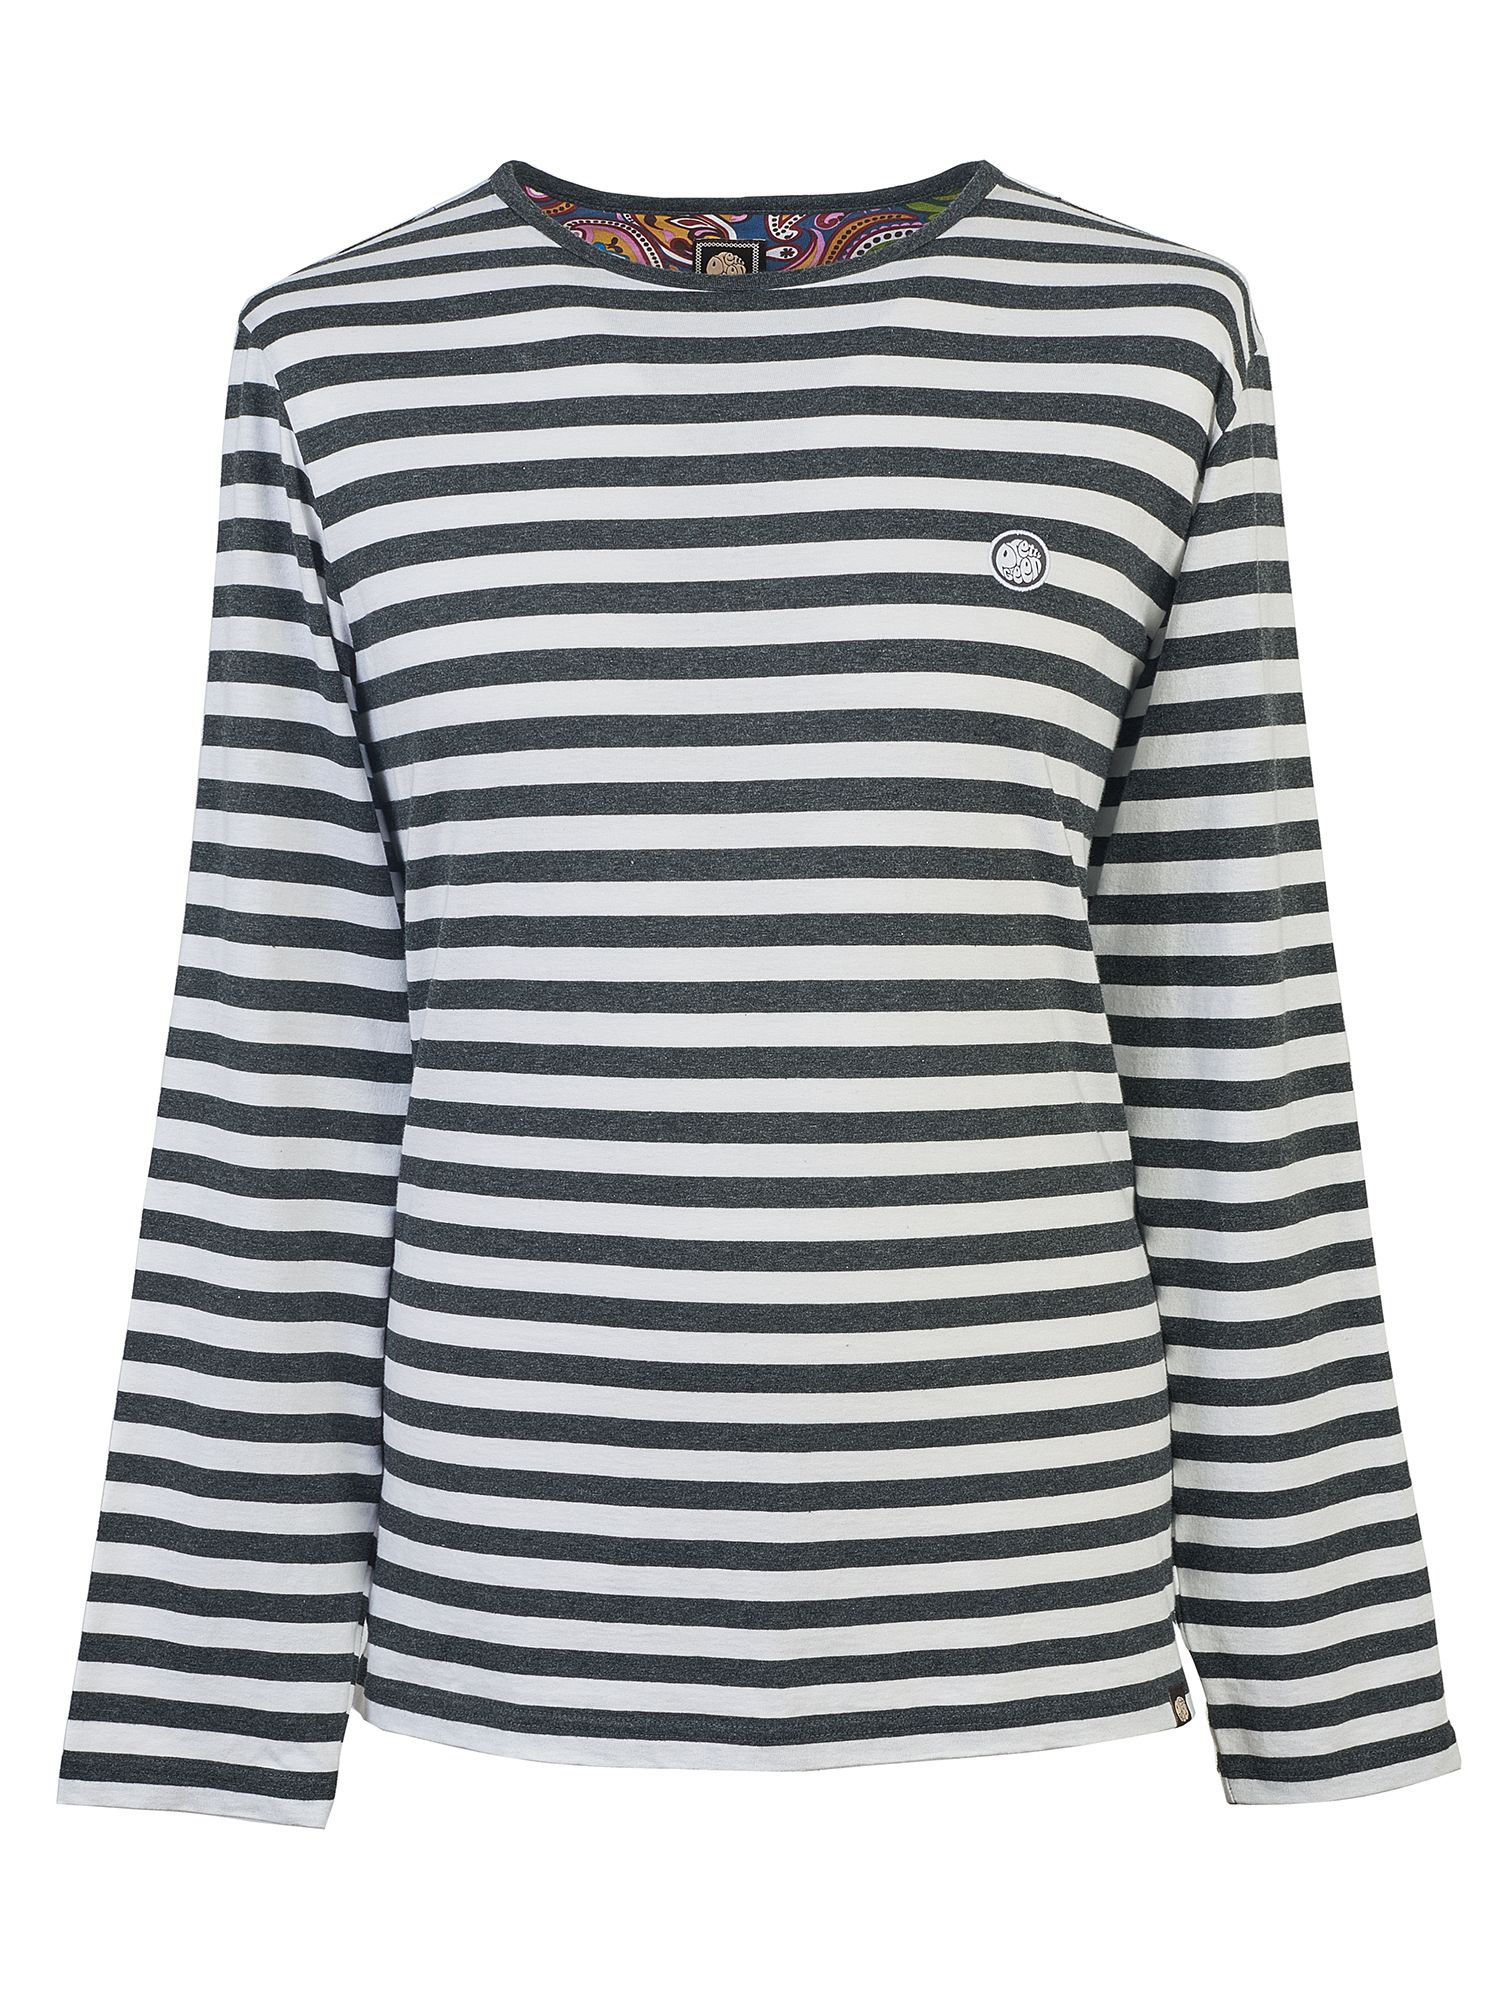 Men's Pretty Green Long Sleeve Striped T-Shirt, Grey